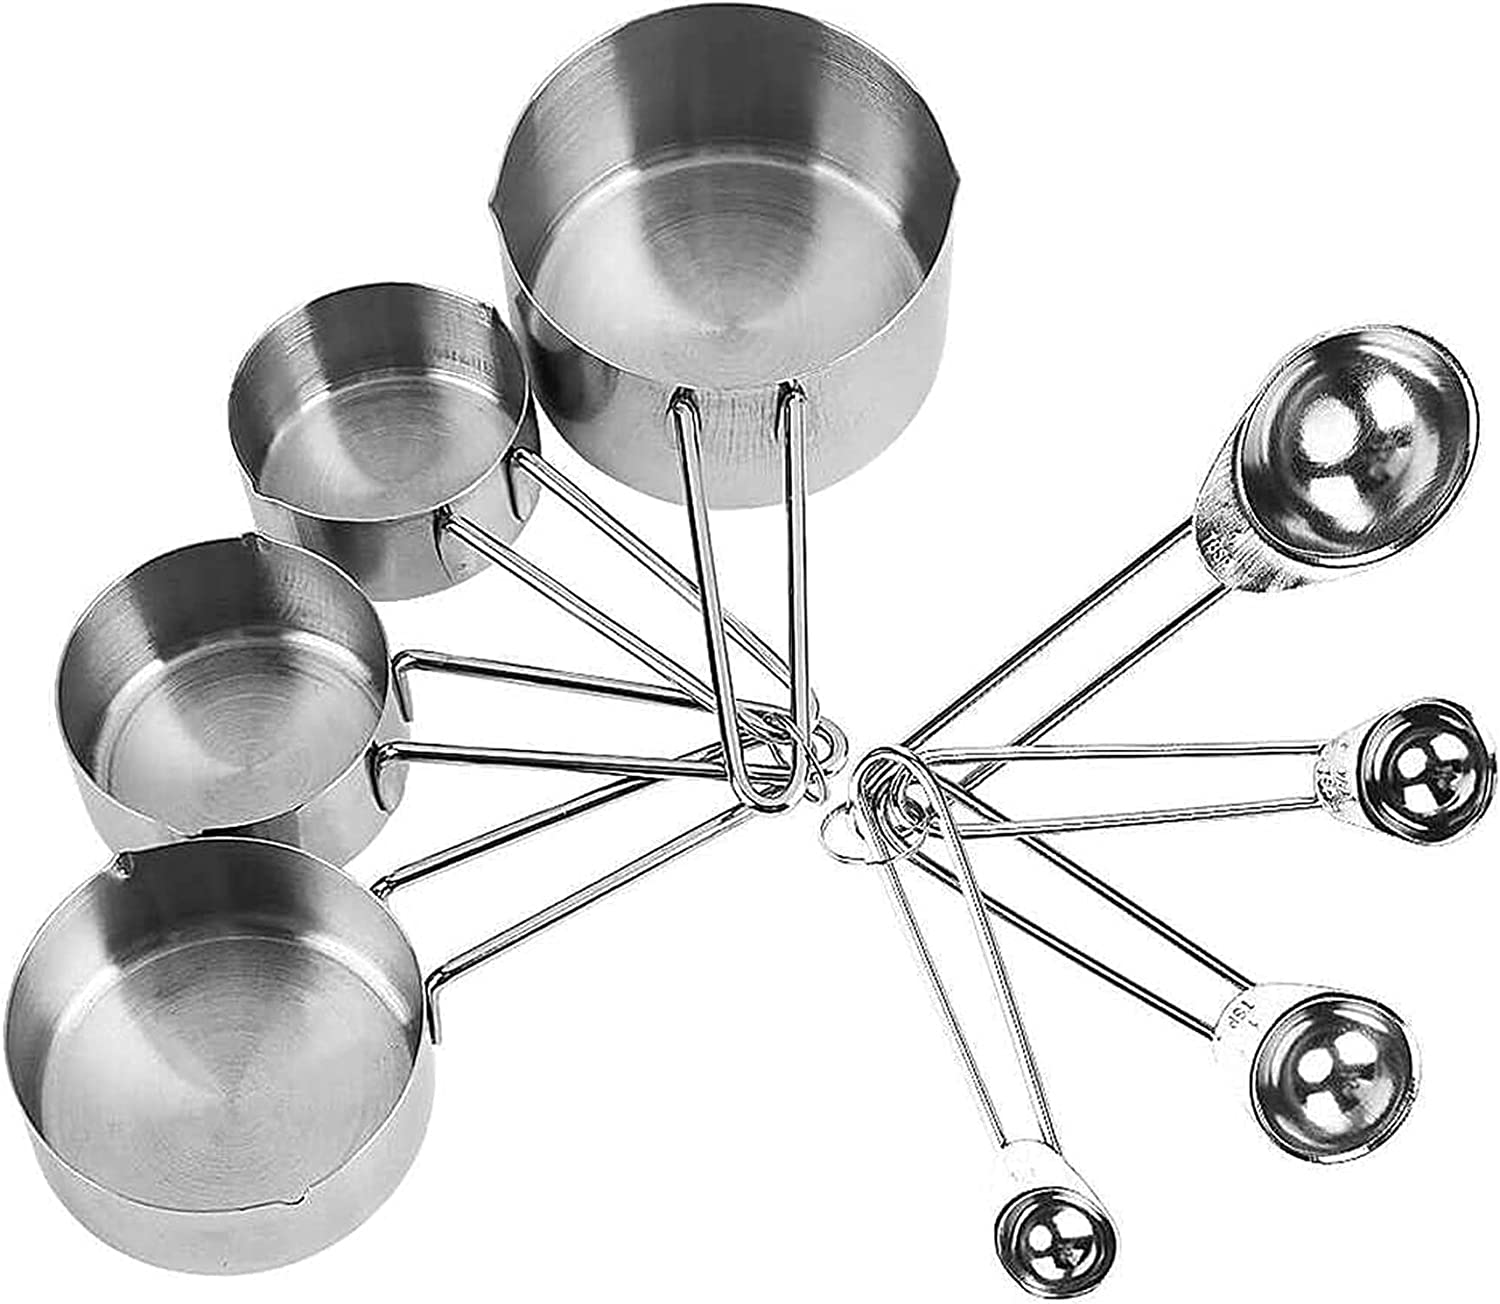 Super special Tampa Mall price Measuring Cups 8Pcs Set Durable Steel Stainless